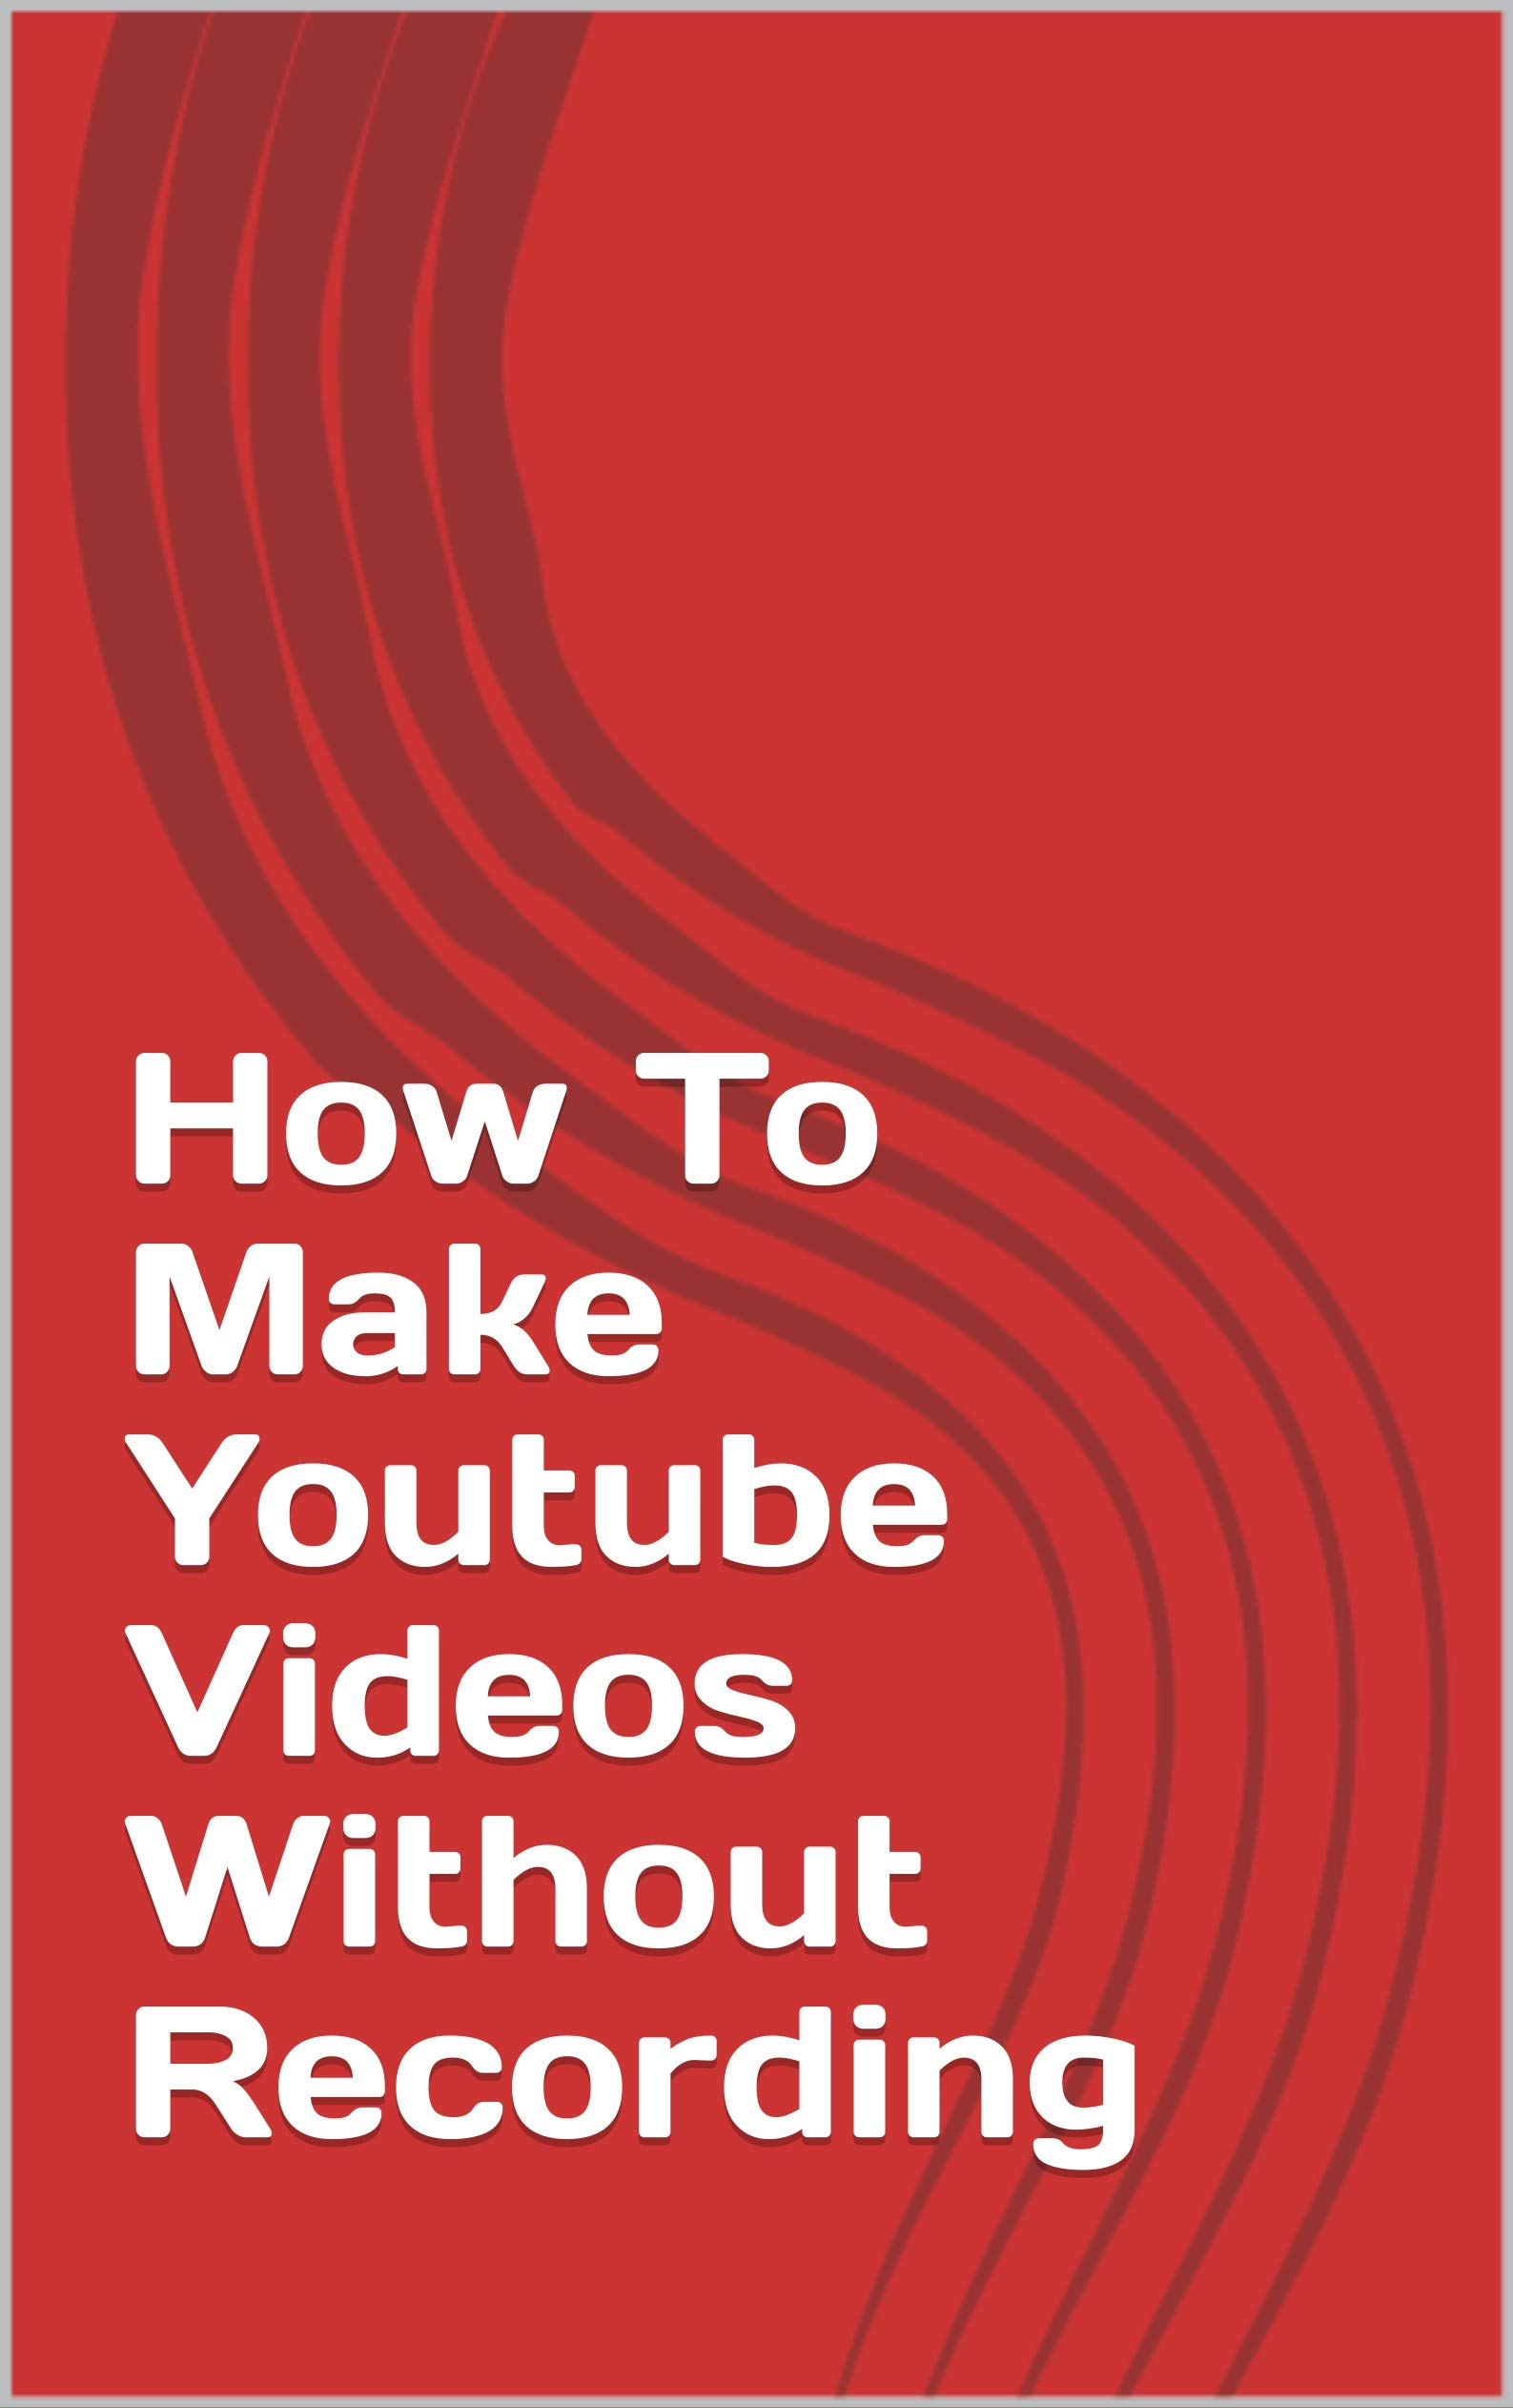 How To Make Youtube Videos Without Recording